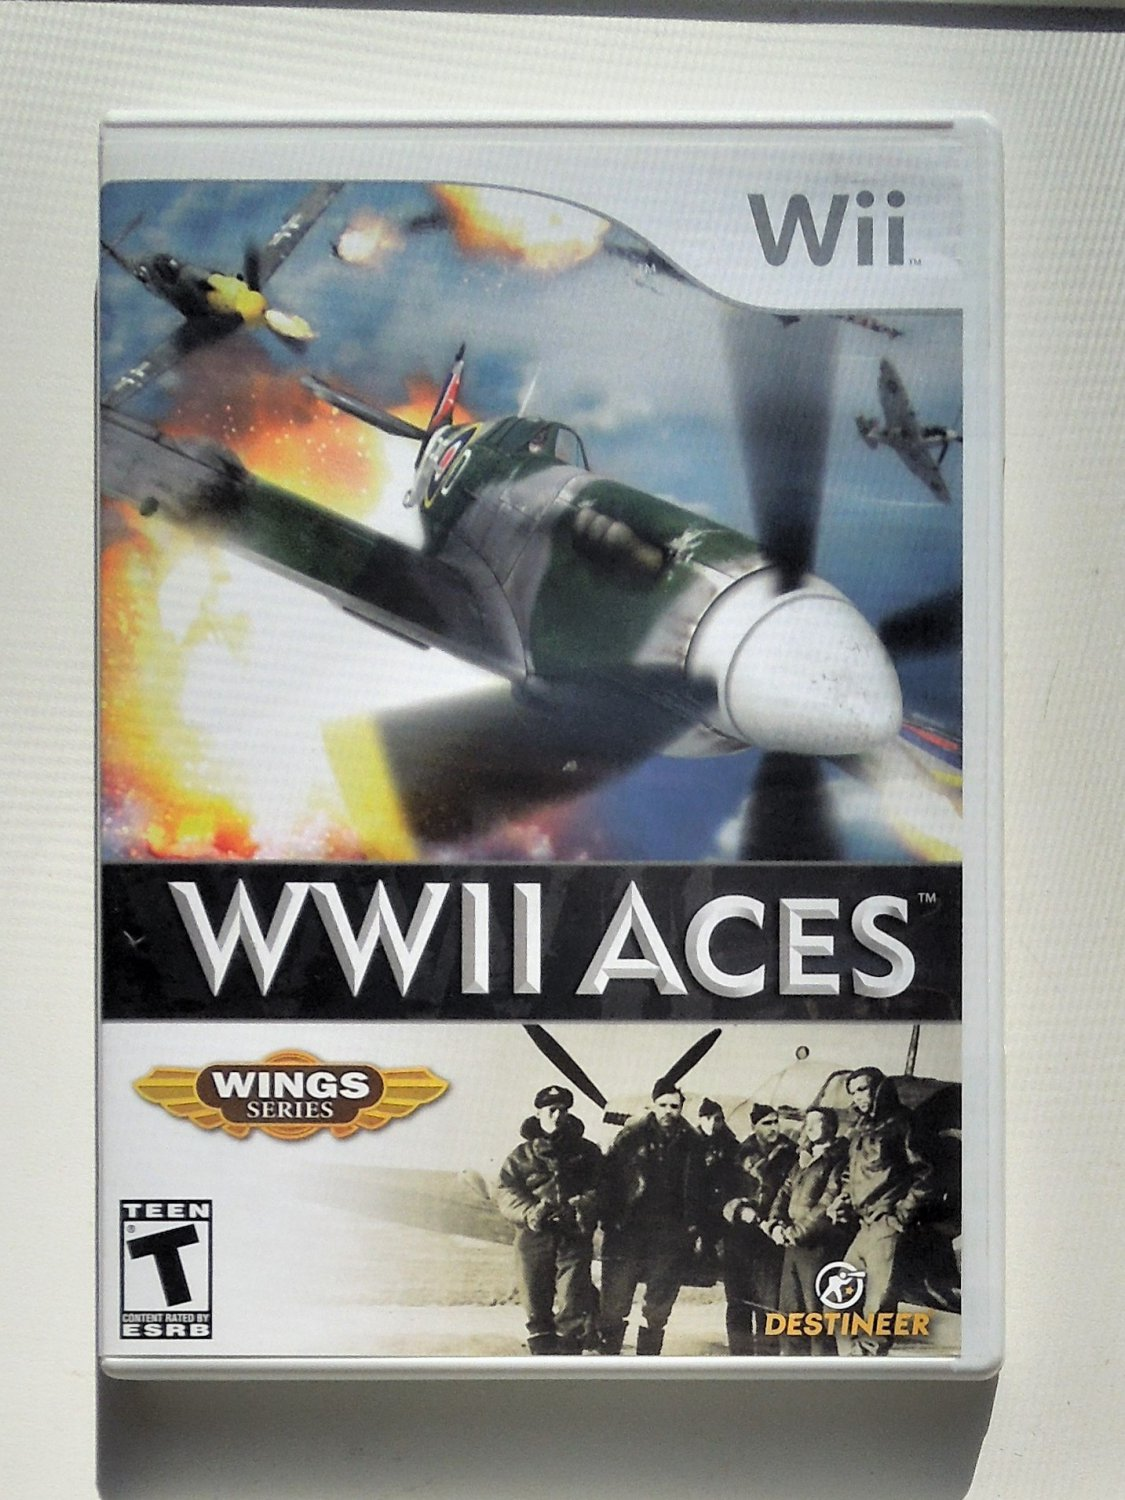 2007 Destineer WWII Aces Wings Series For Nintendo Wii Game Systems